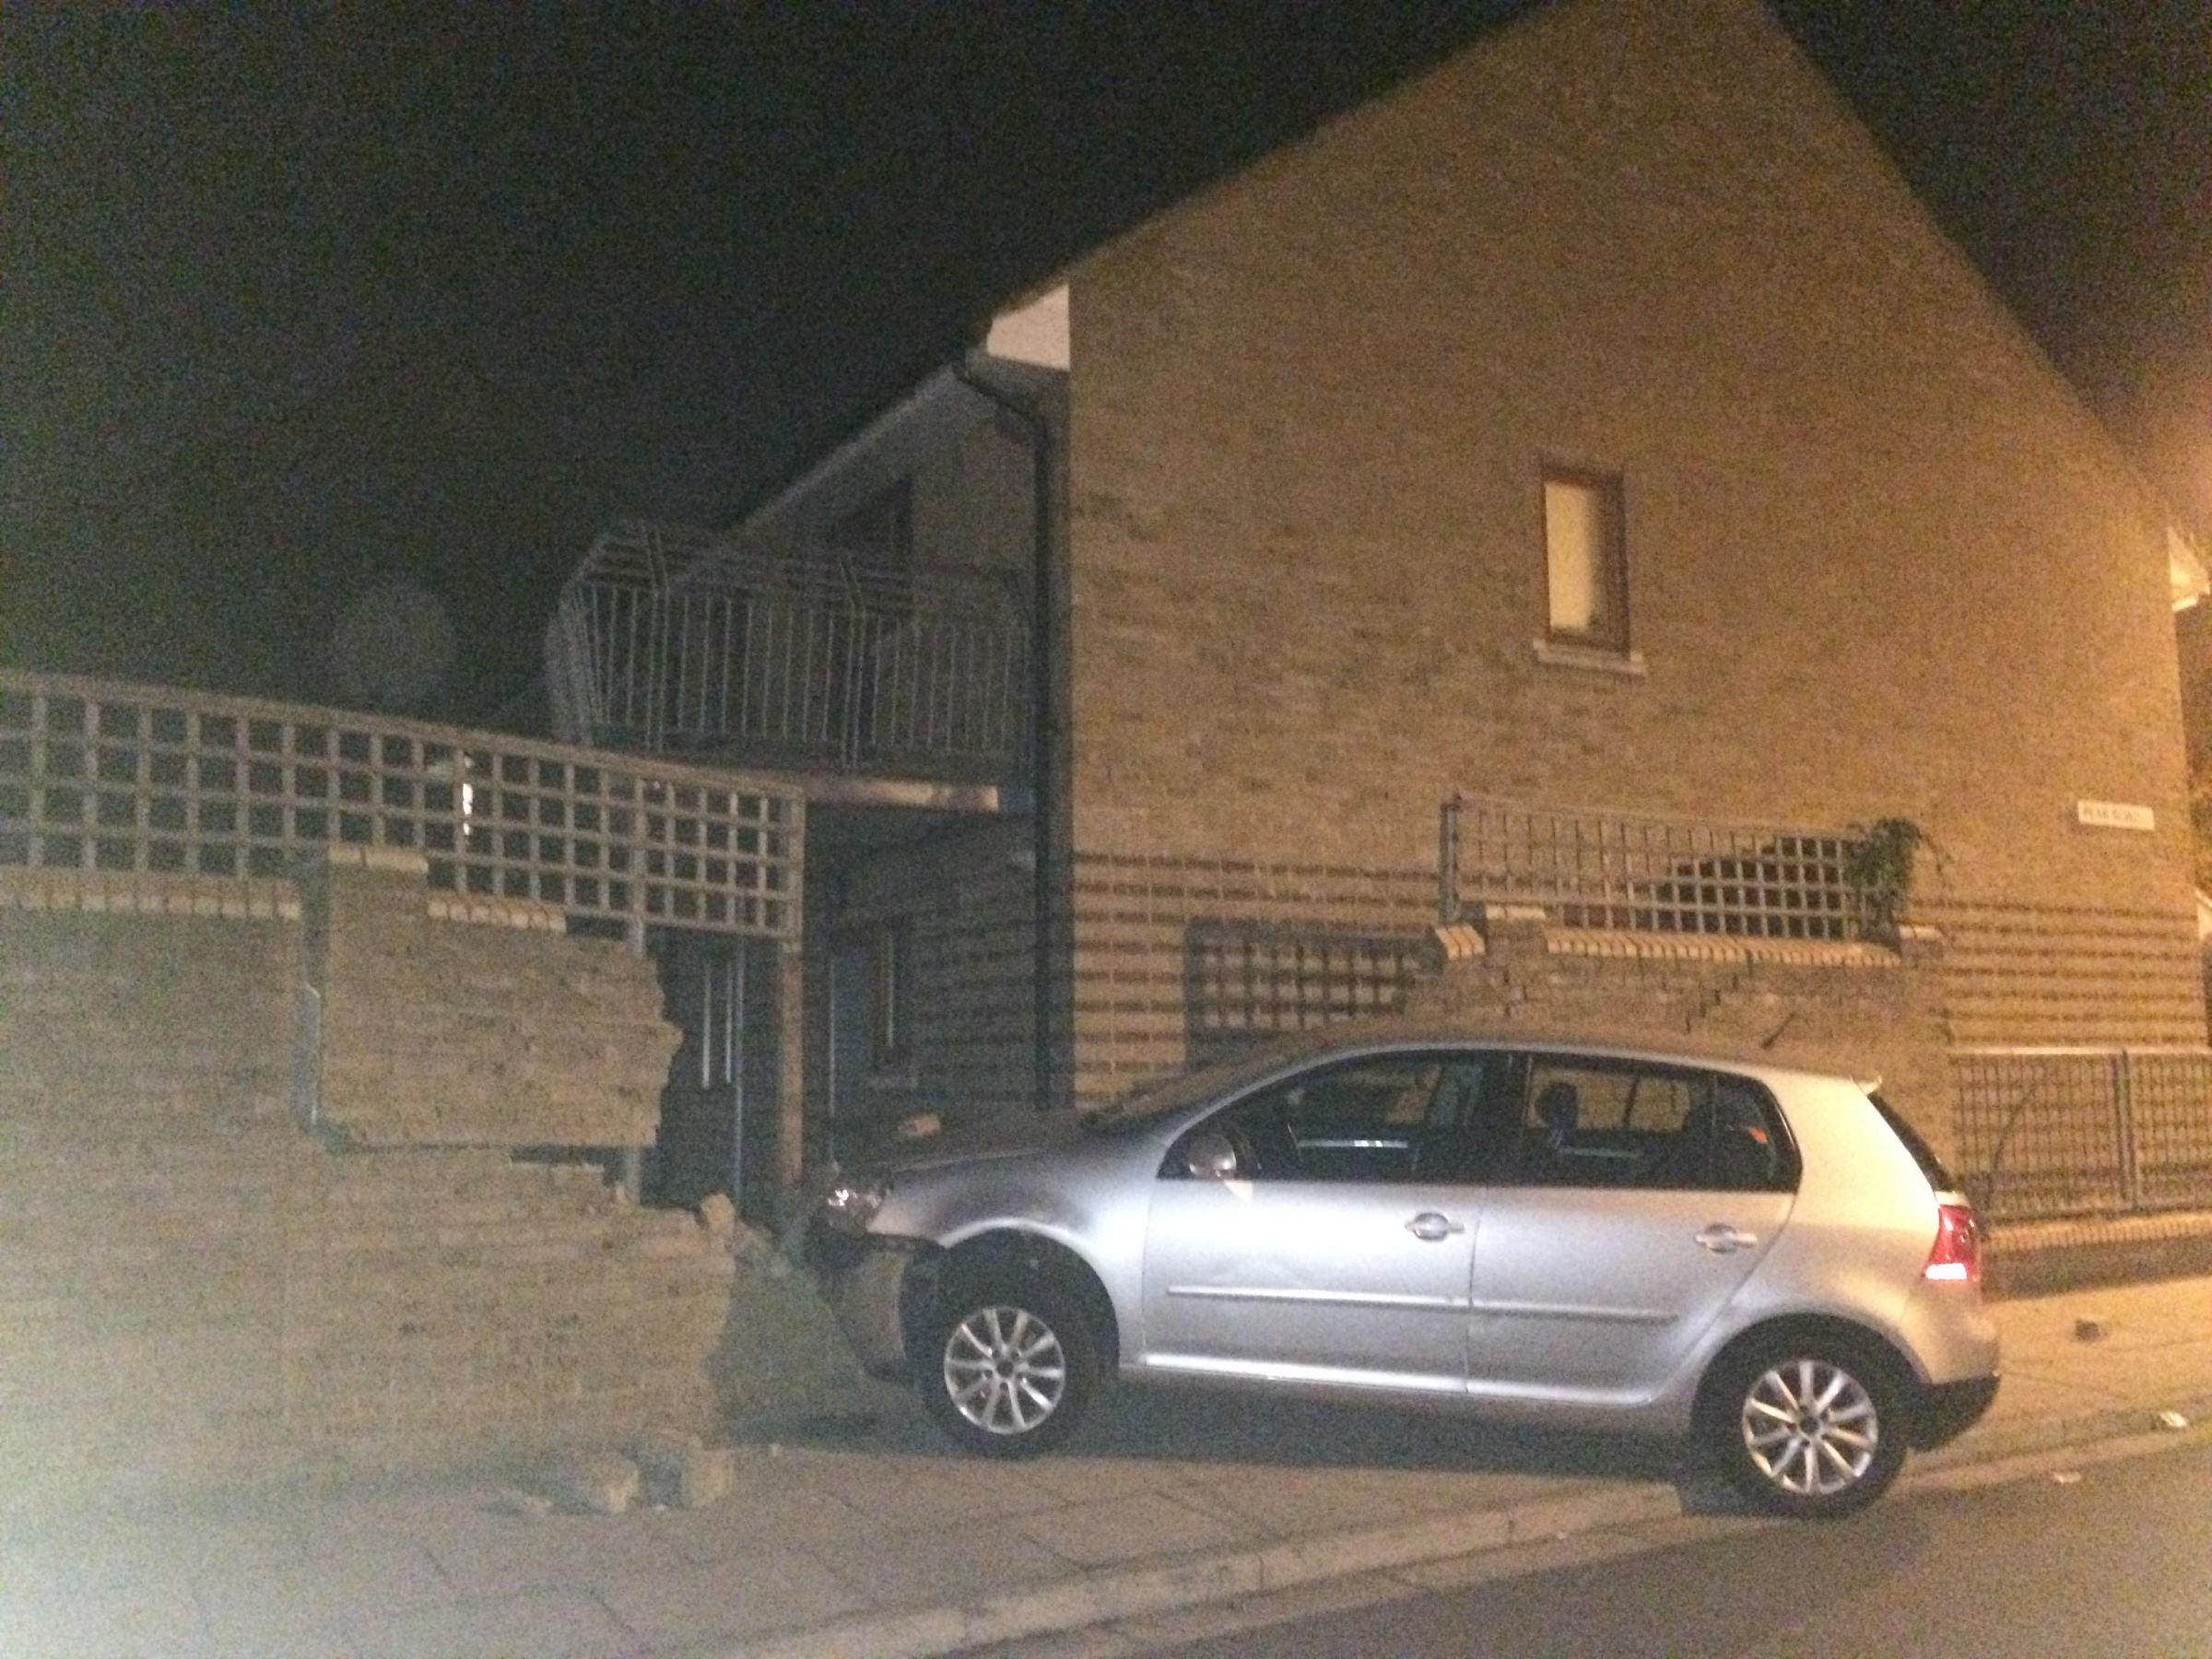 Driver flees after crashing car into wall